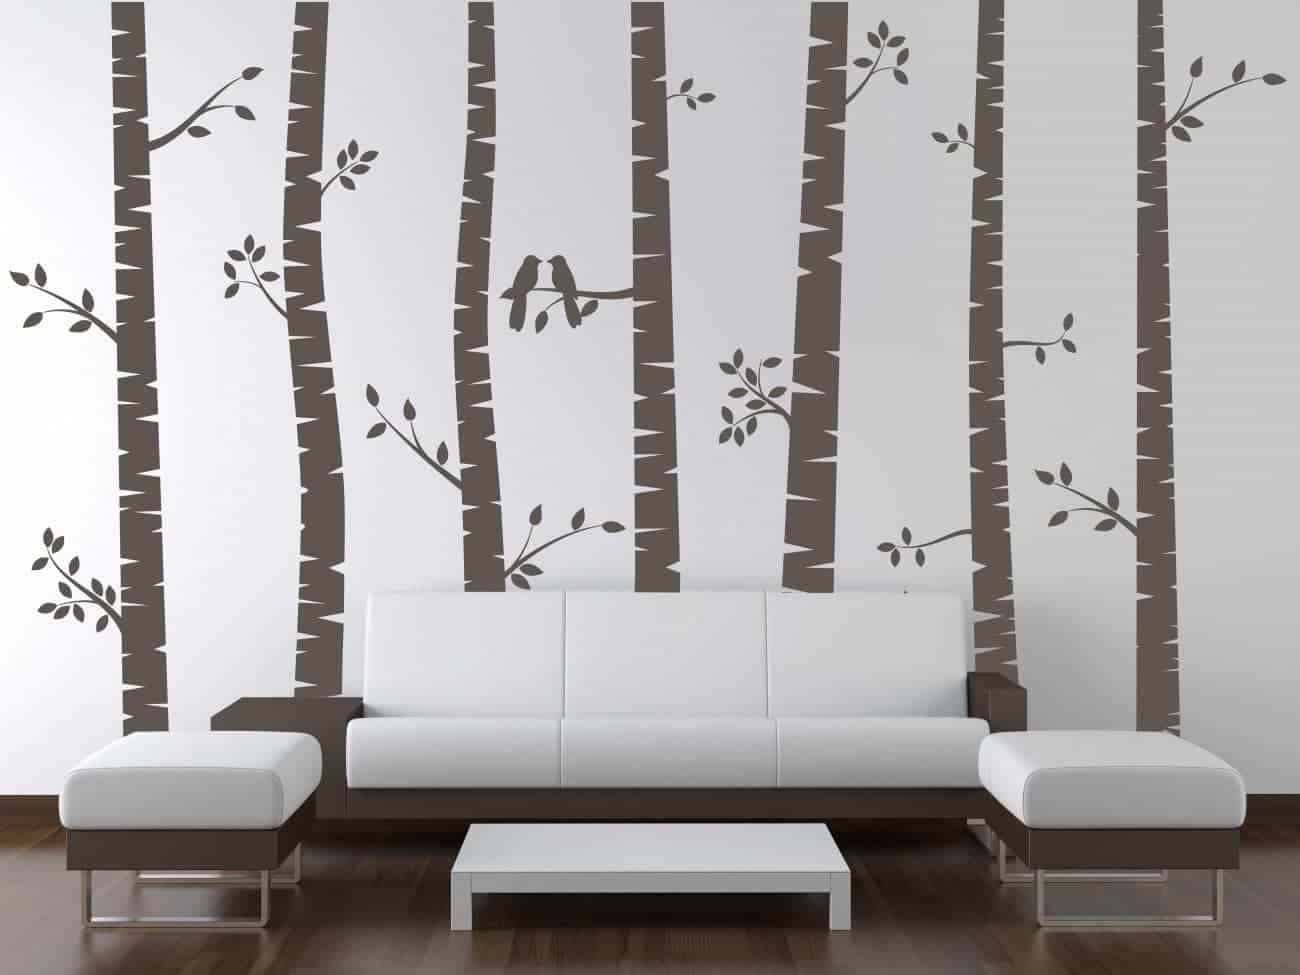 Birch tree wall decal sticker